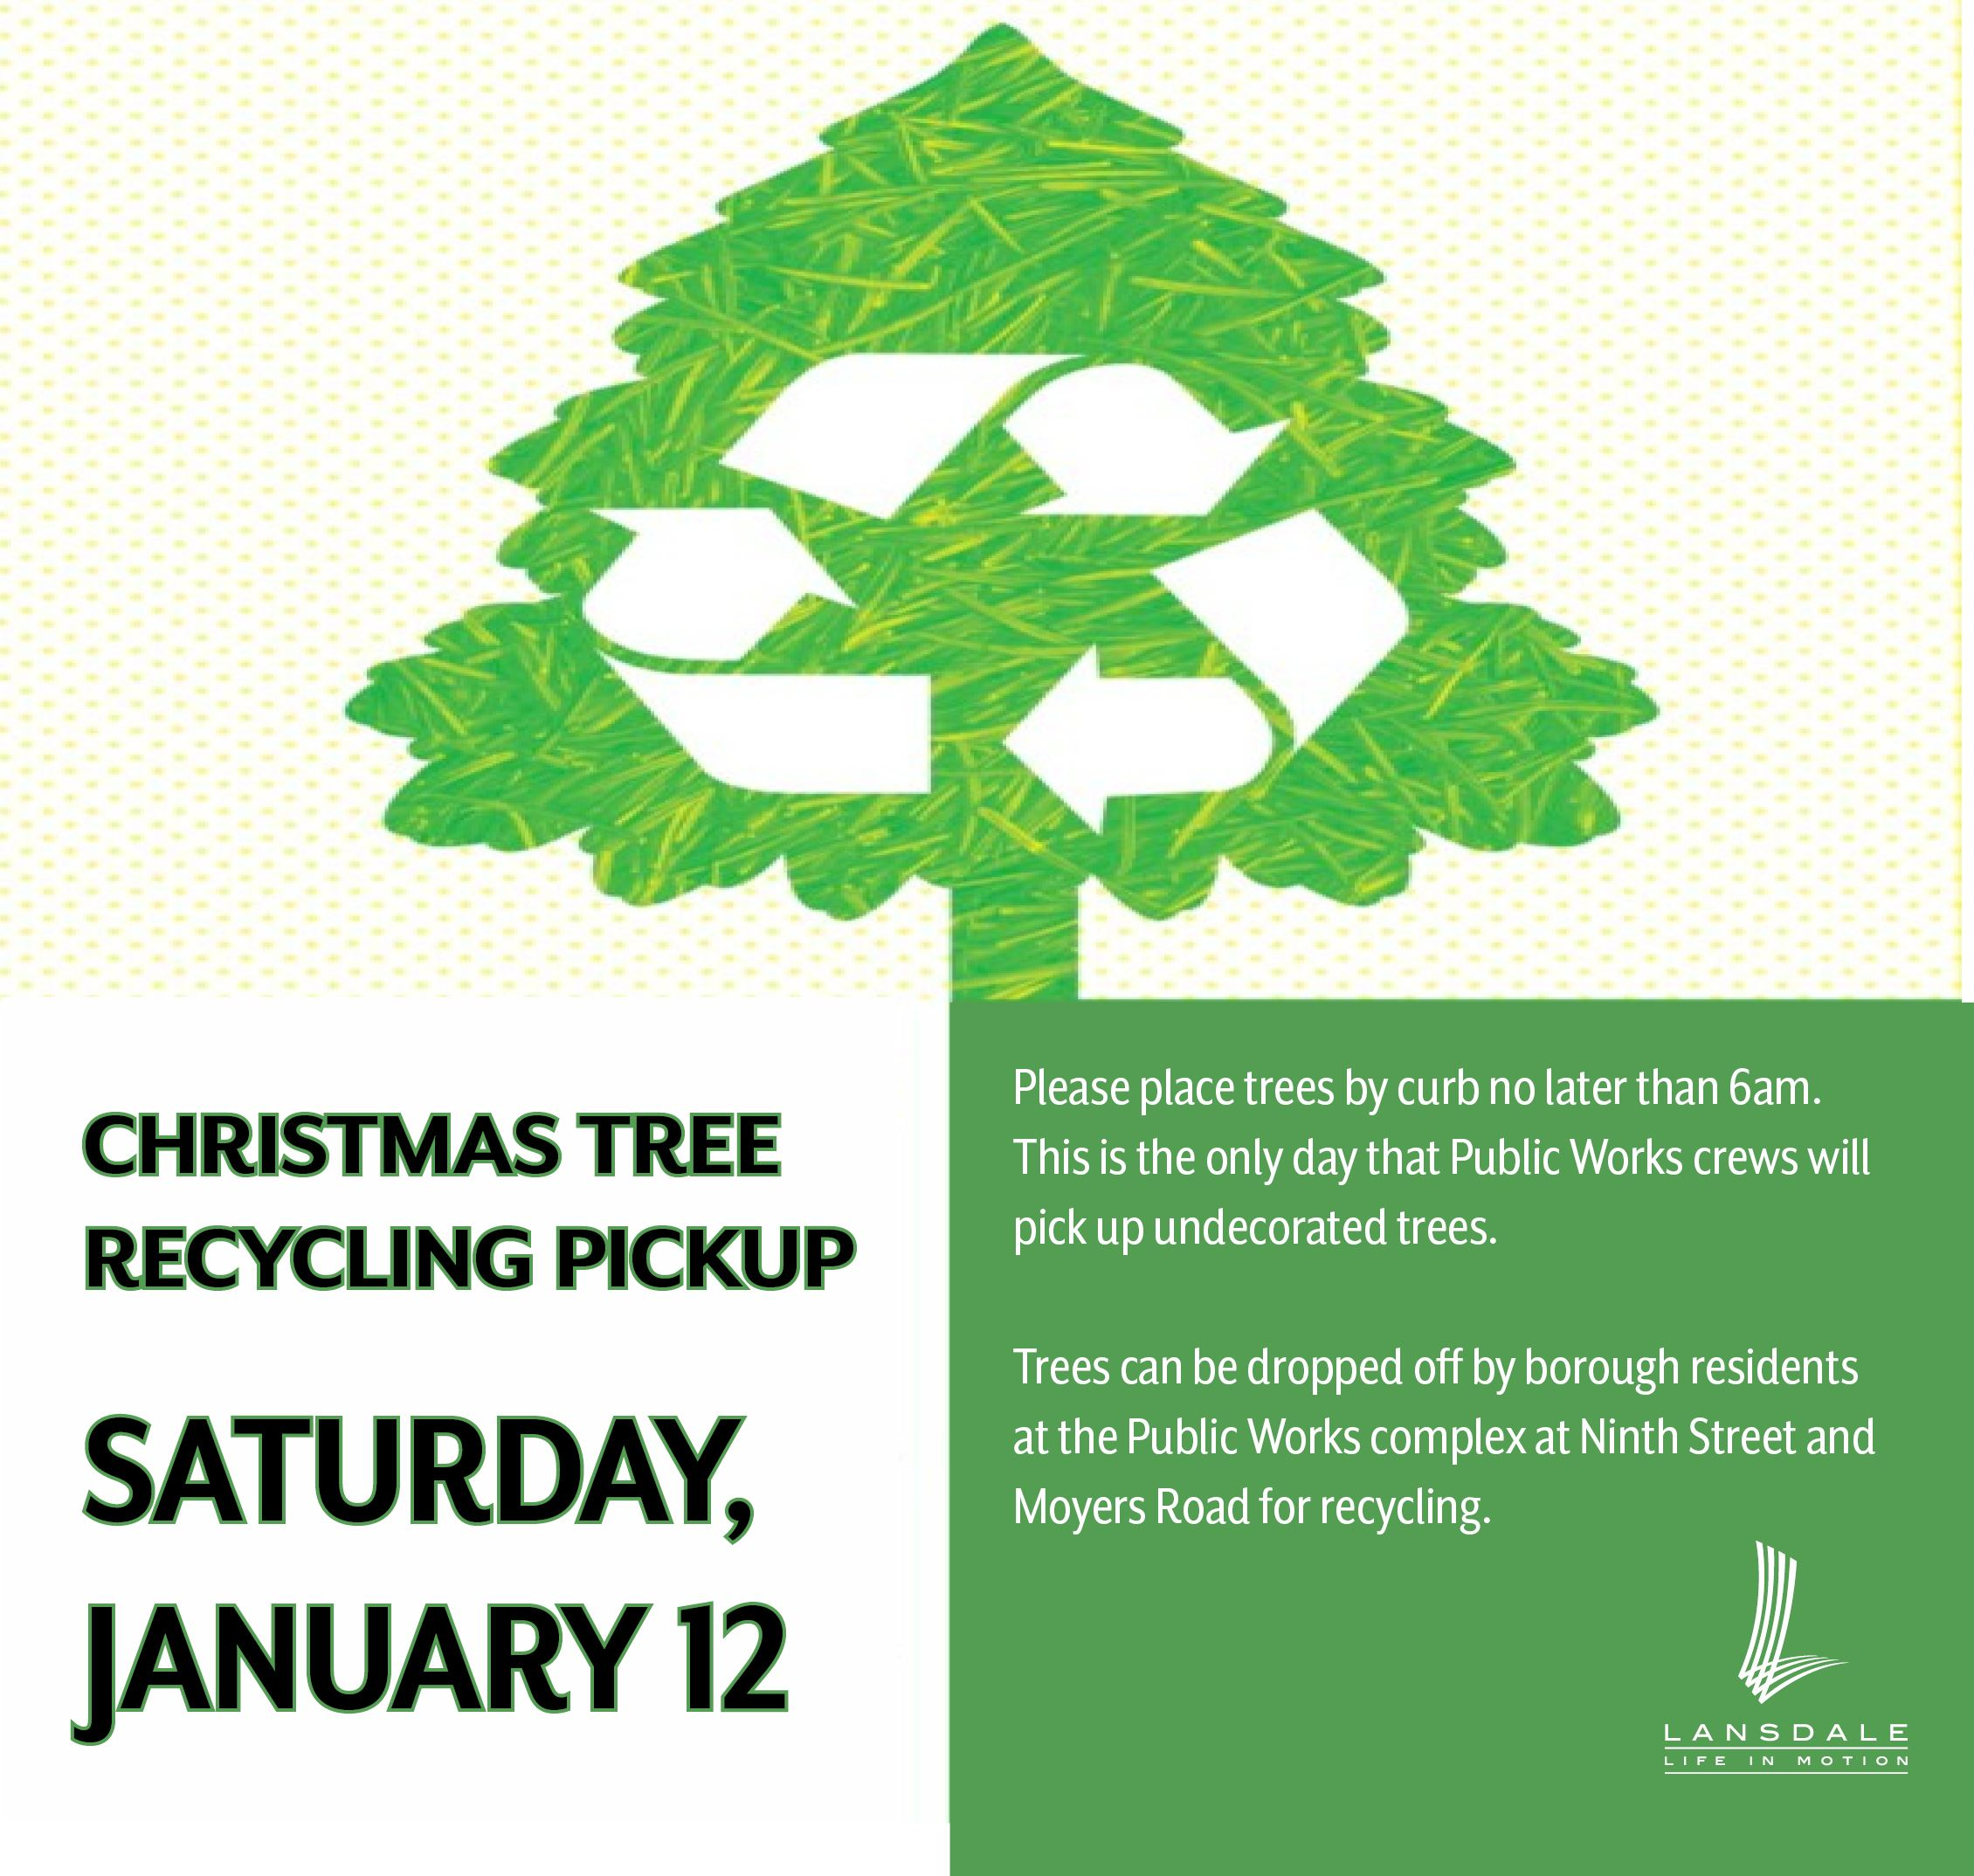 Lansdale Christmas Tree Collection 2020 Lansdale Borough, PA   Official Website